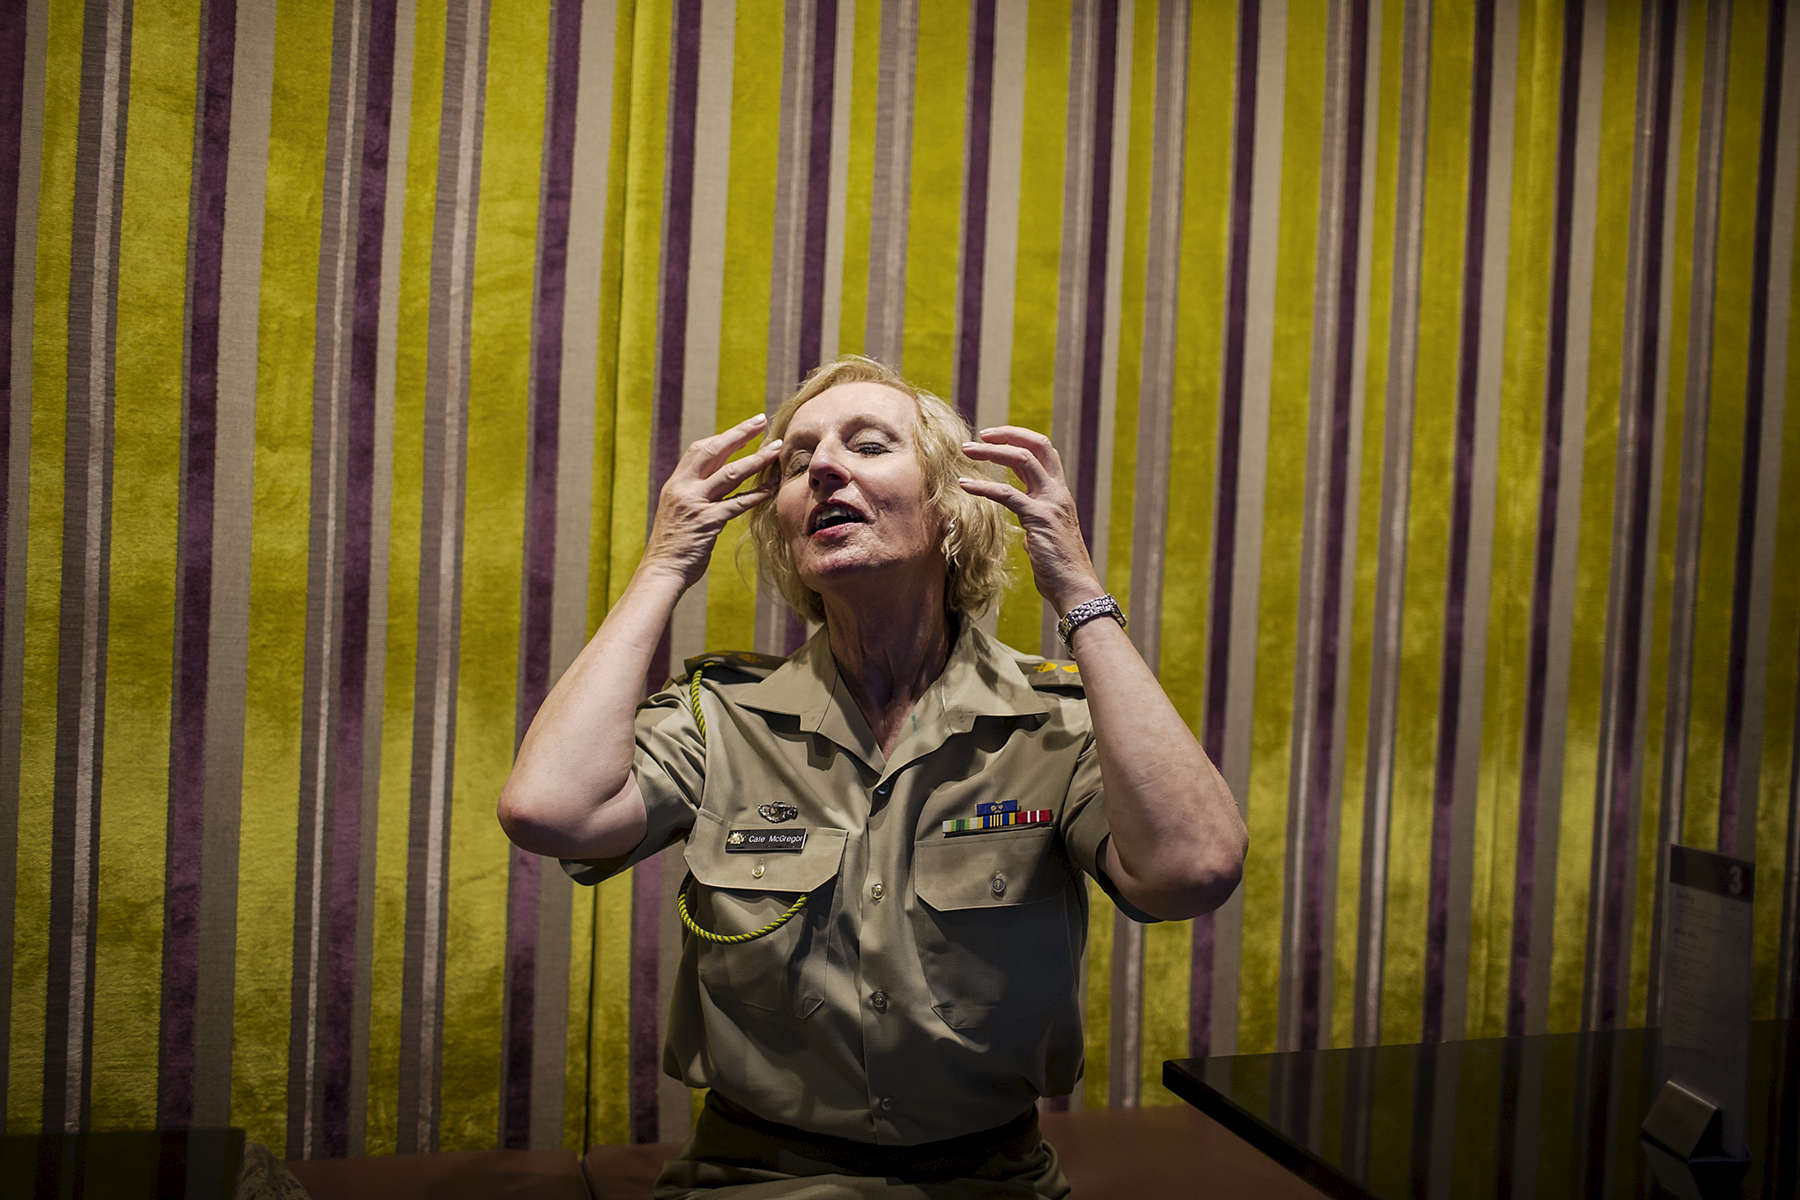 Sydney, NSW, Australia - 02/19/2014: In Martin Place, Sydney CBD, Cate McGregor touches up her hair inside a cafe after coming in from heavy rain. Cate McGregor is the speech writer for the Chief of Australian Army, Lieutenant General David Morrison AO and the most senior transgender military officer in the world.  Conor Ashleigh for the New York Times.